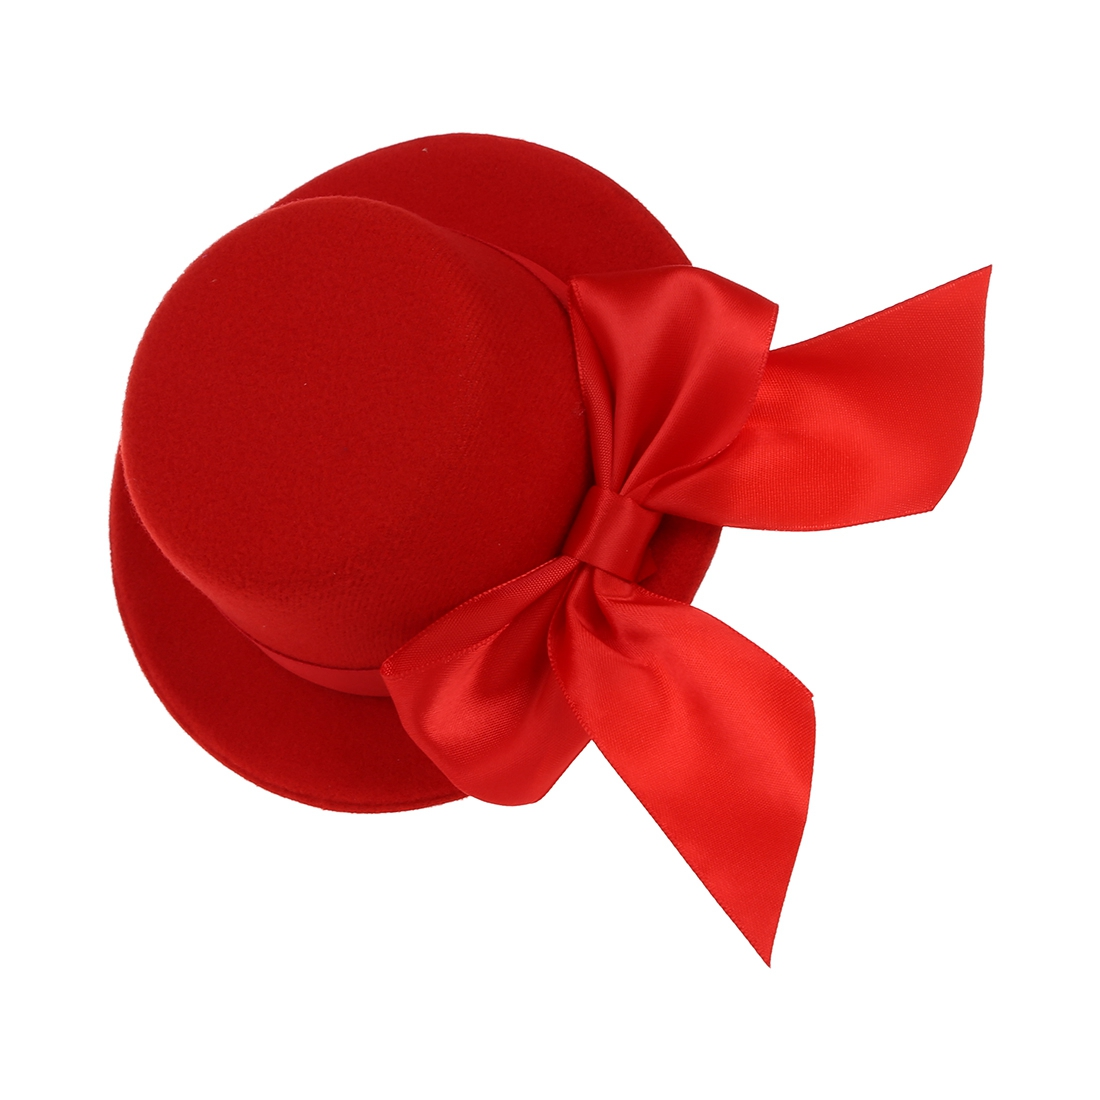 33e0ac467 Details about Ladies Mini Top Hat Fascinator Burlesque Millinery w/ Bowknot  - Red G6P4